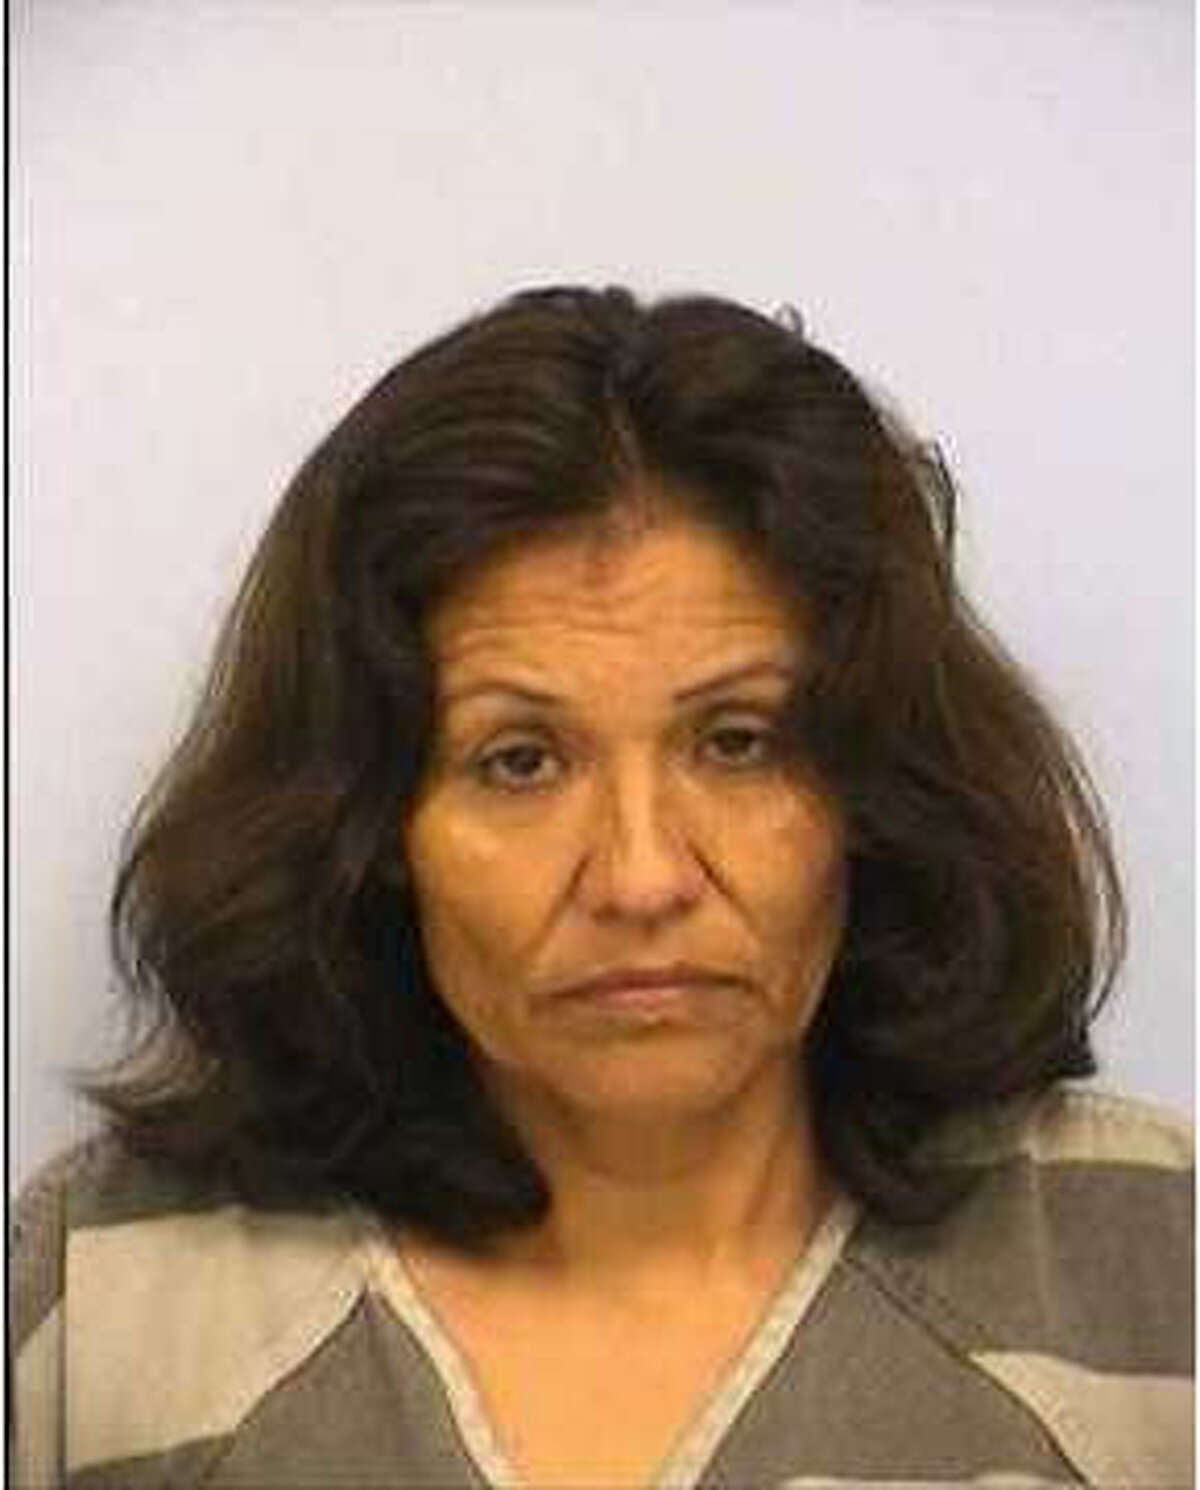 The DEA arrested 18 people in Austin, Texas on March 28, 2018 after they were accused of smuggling cocaine, meth and heroin across multiple states.Maria Barcenas, 47, was arrested as part of the sting.